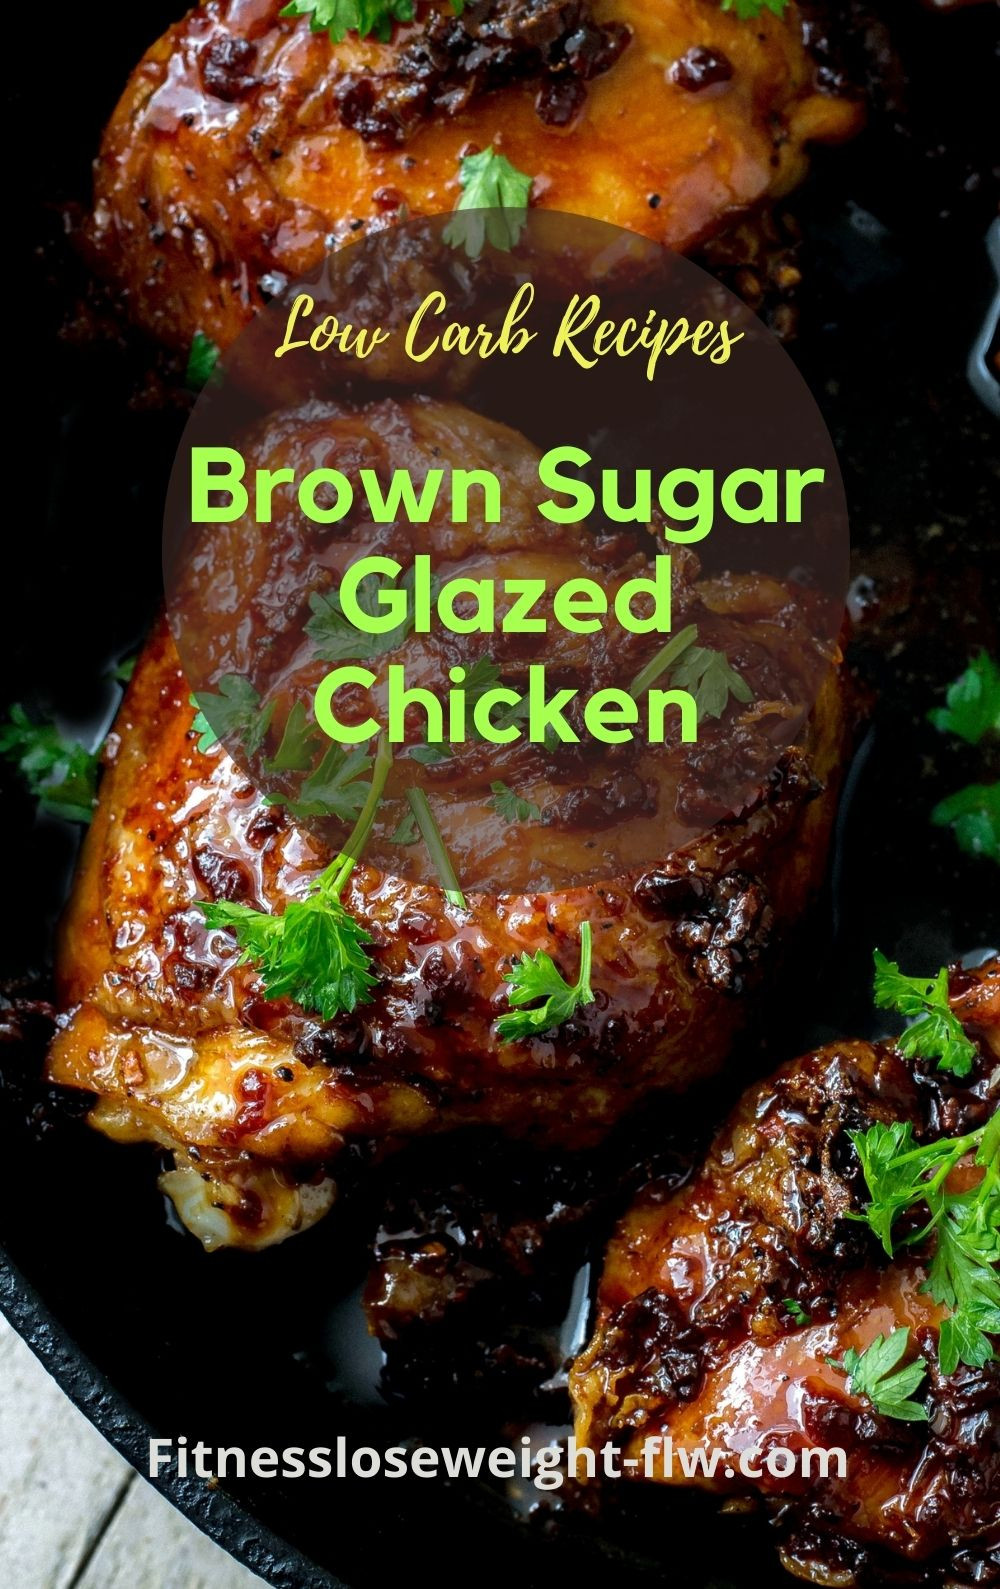 Low Carb Recipes E-Cookbook